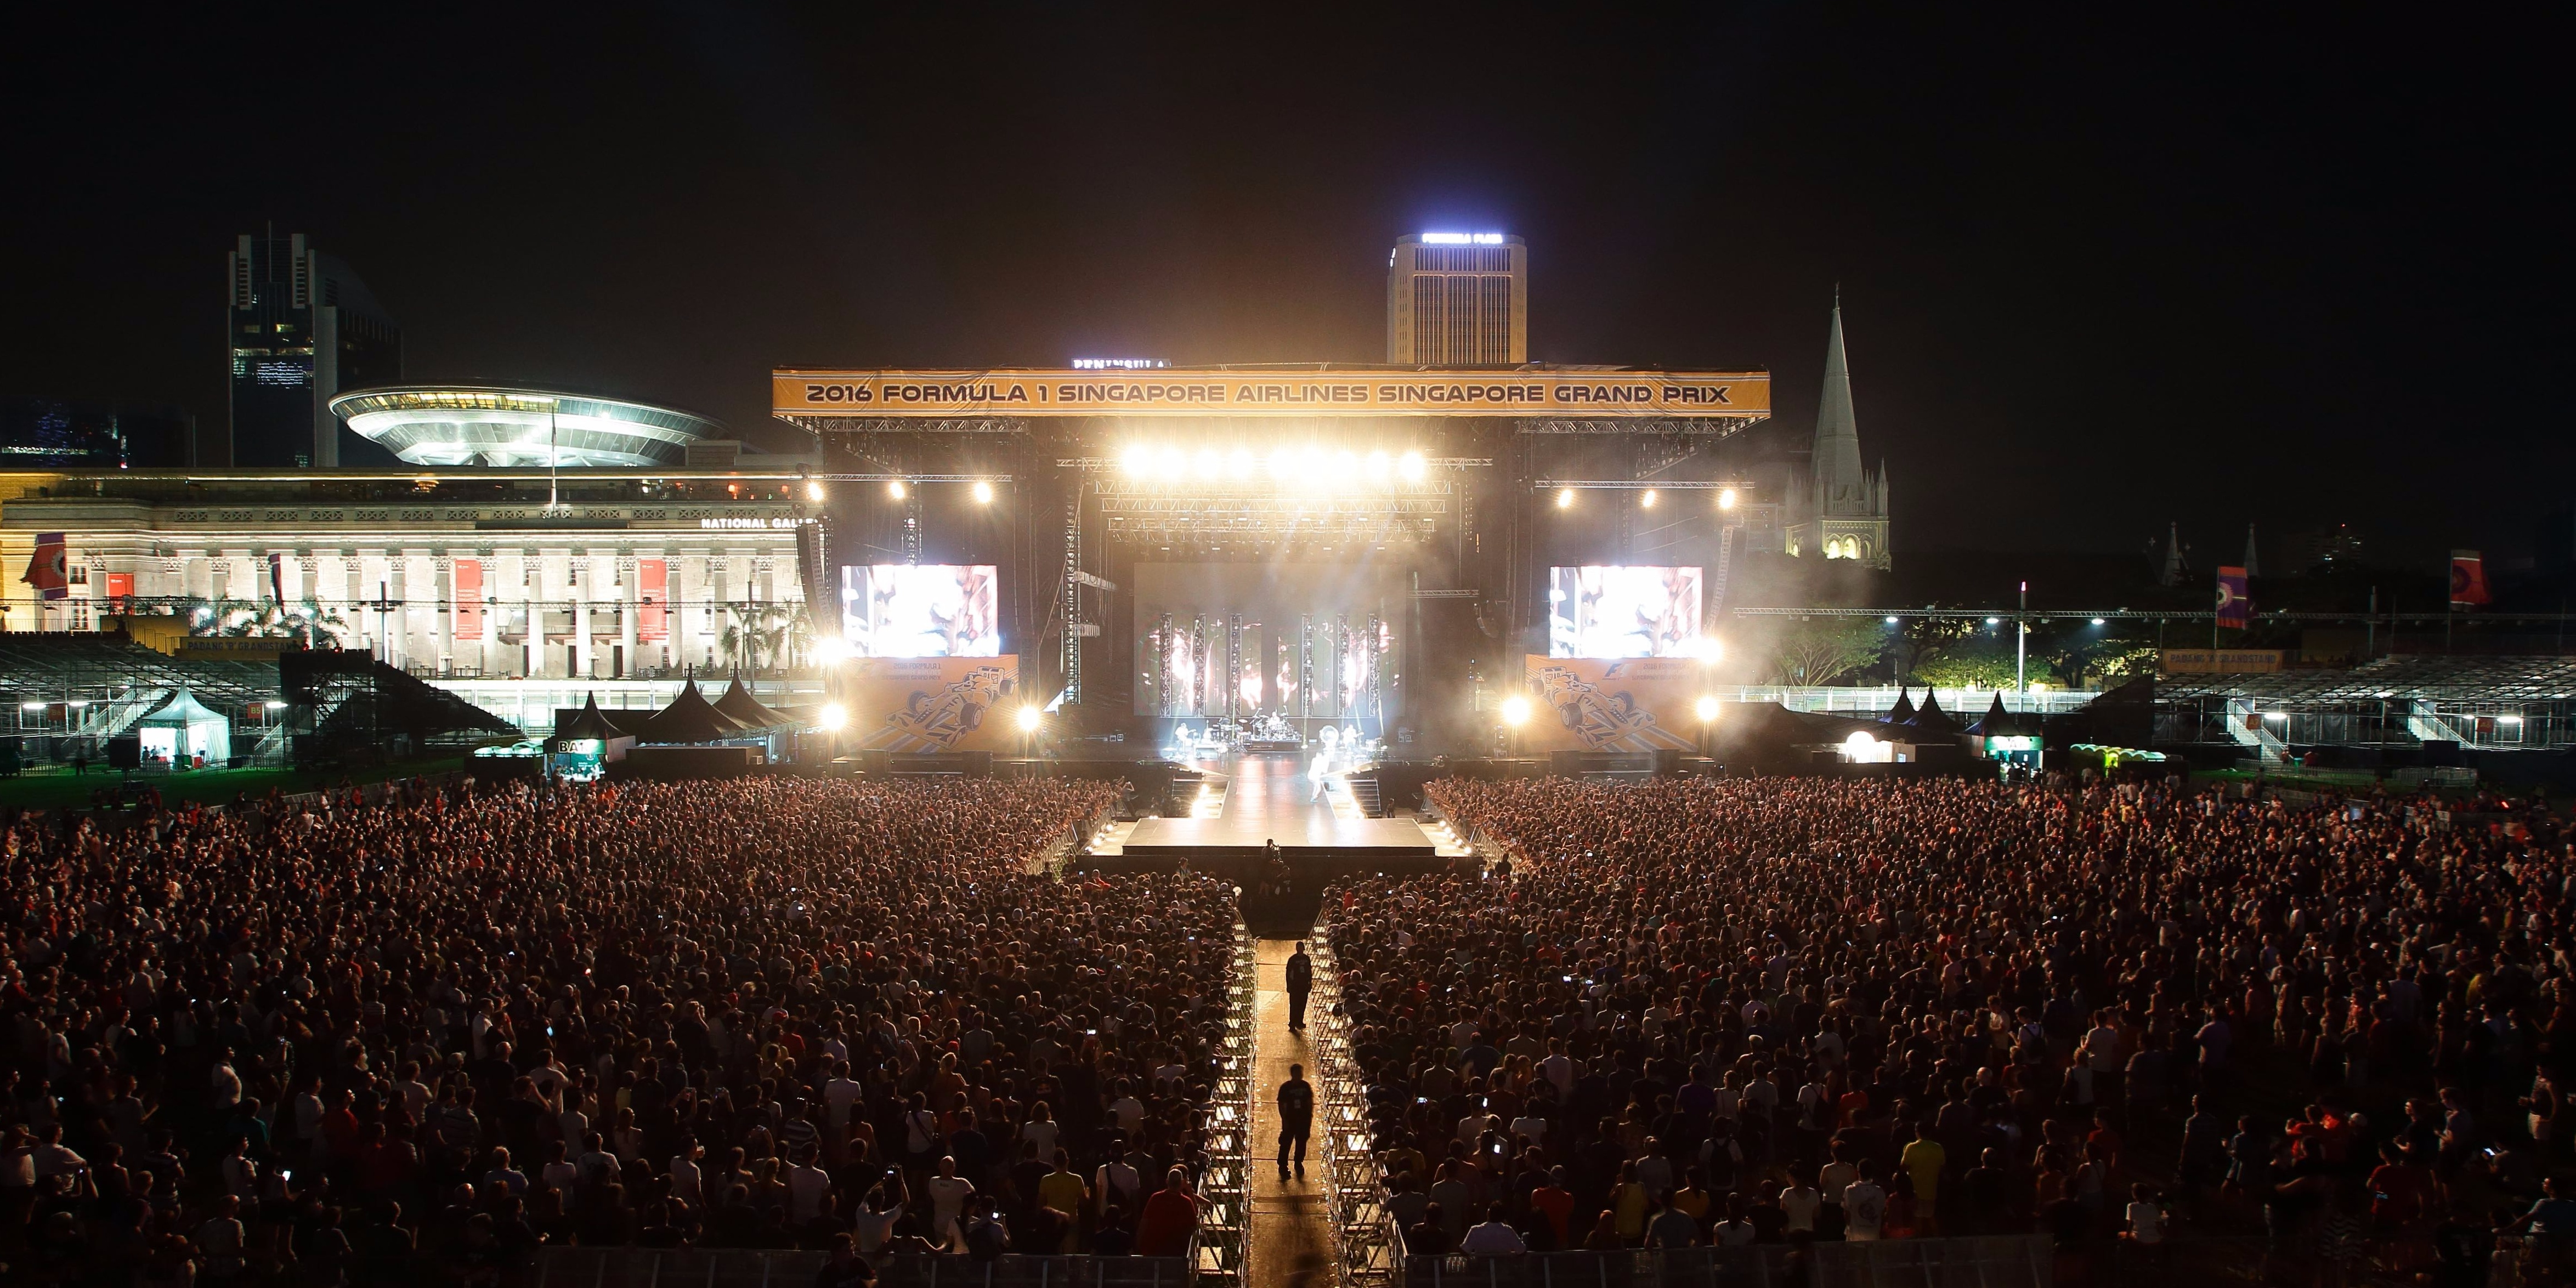 Singapore Grand Prix 2017, a festival for music and race fans